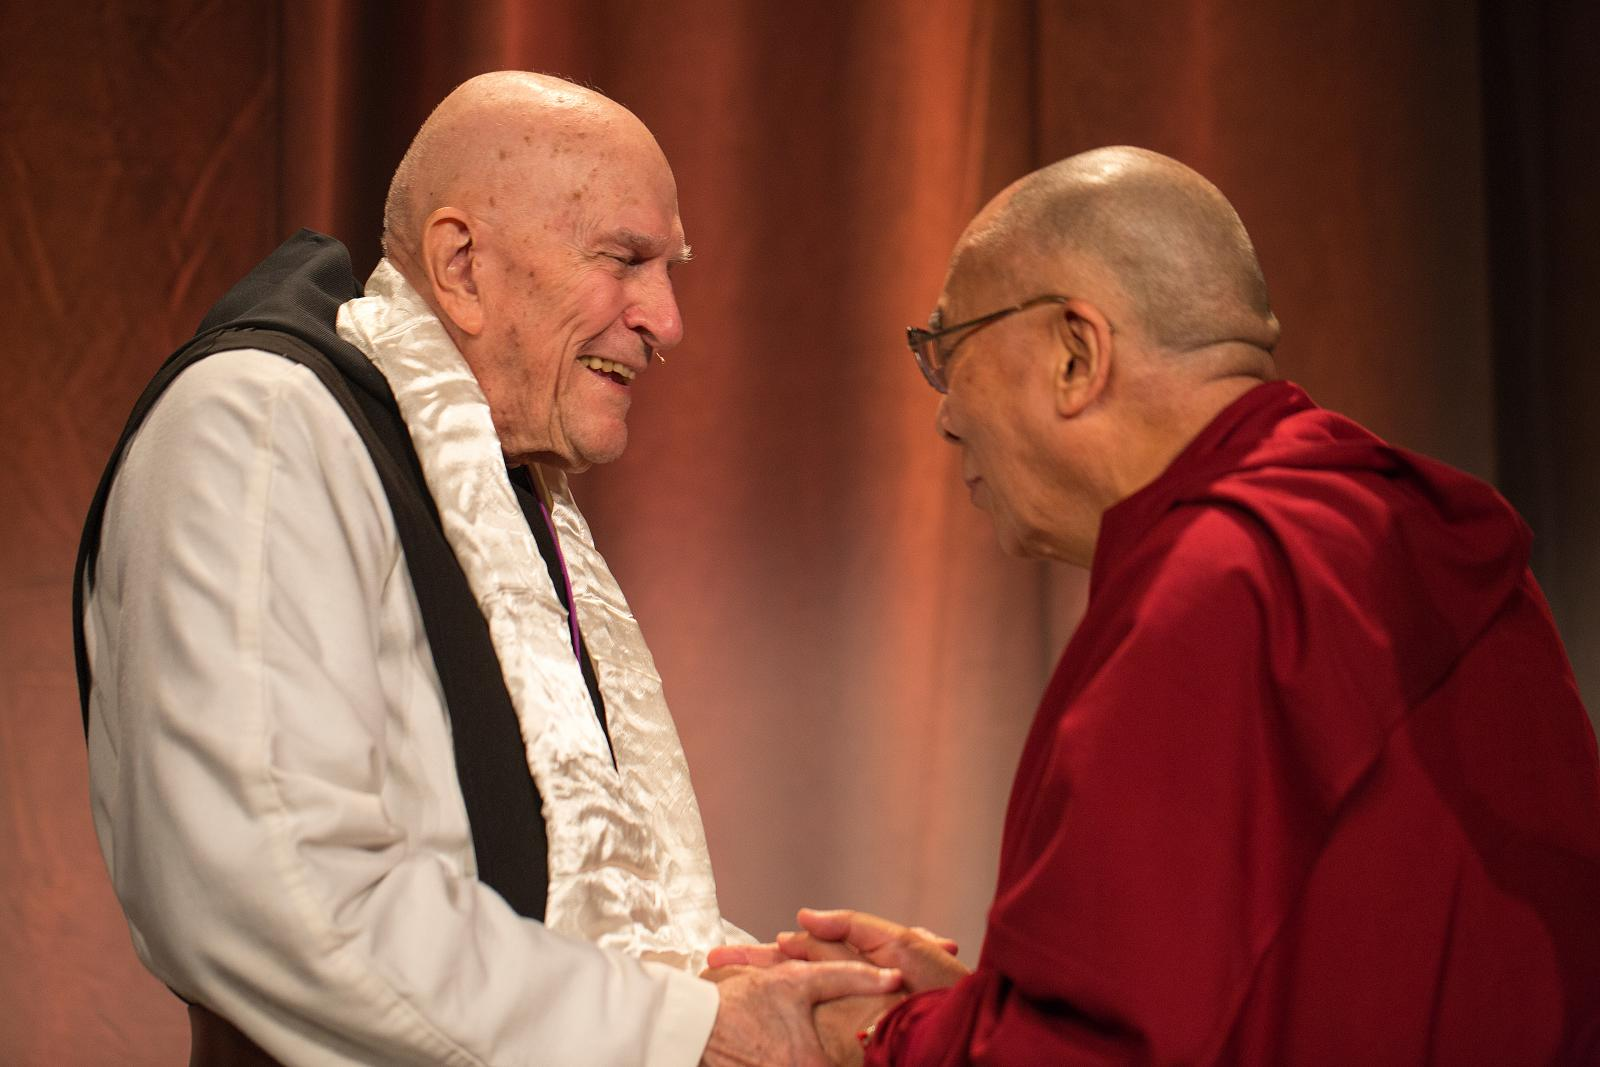 an essay on tenzin gyatso and the dalai lama Tenzin gyatso, the current and xiv dalai lama, has traveled the  lama quotes  book: a collection of speeches, quotations, essays and.